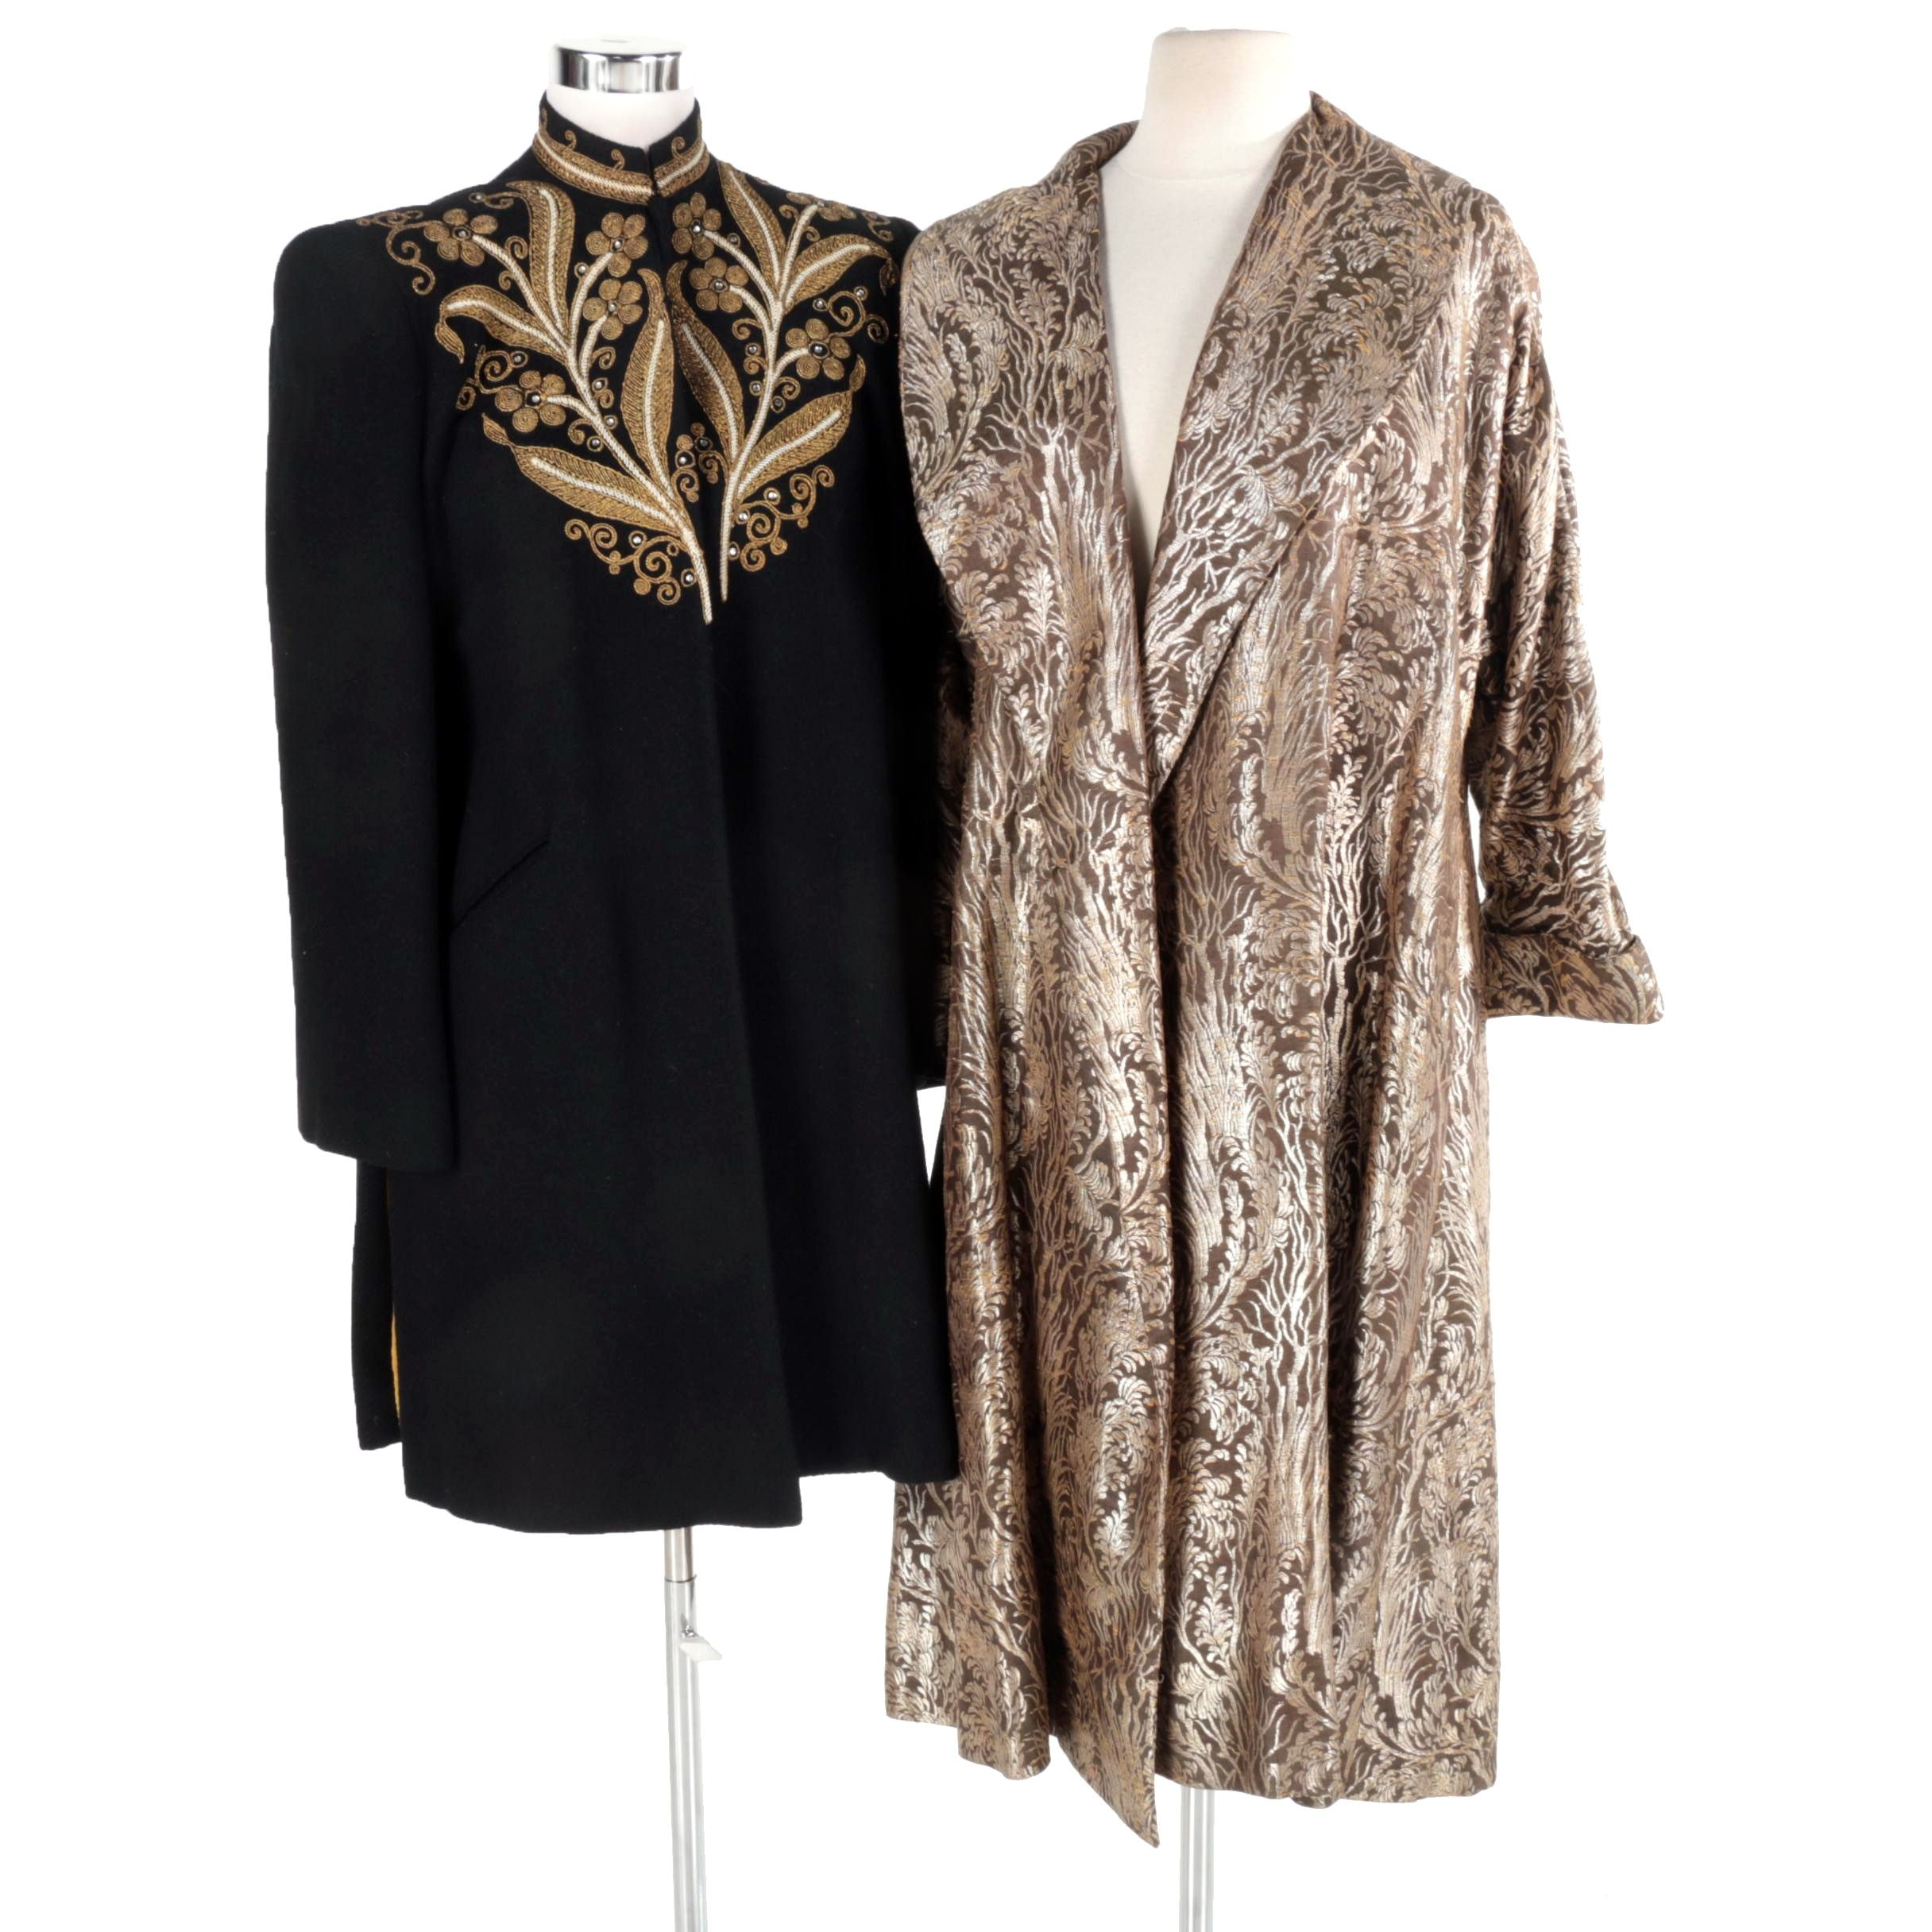 Women's Vintage Embroidered and Damask Coats